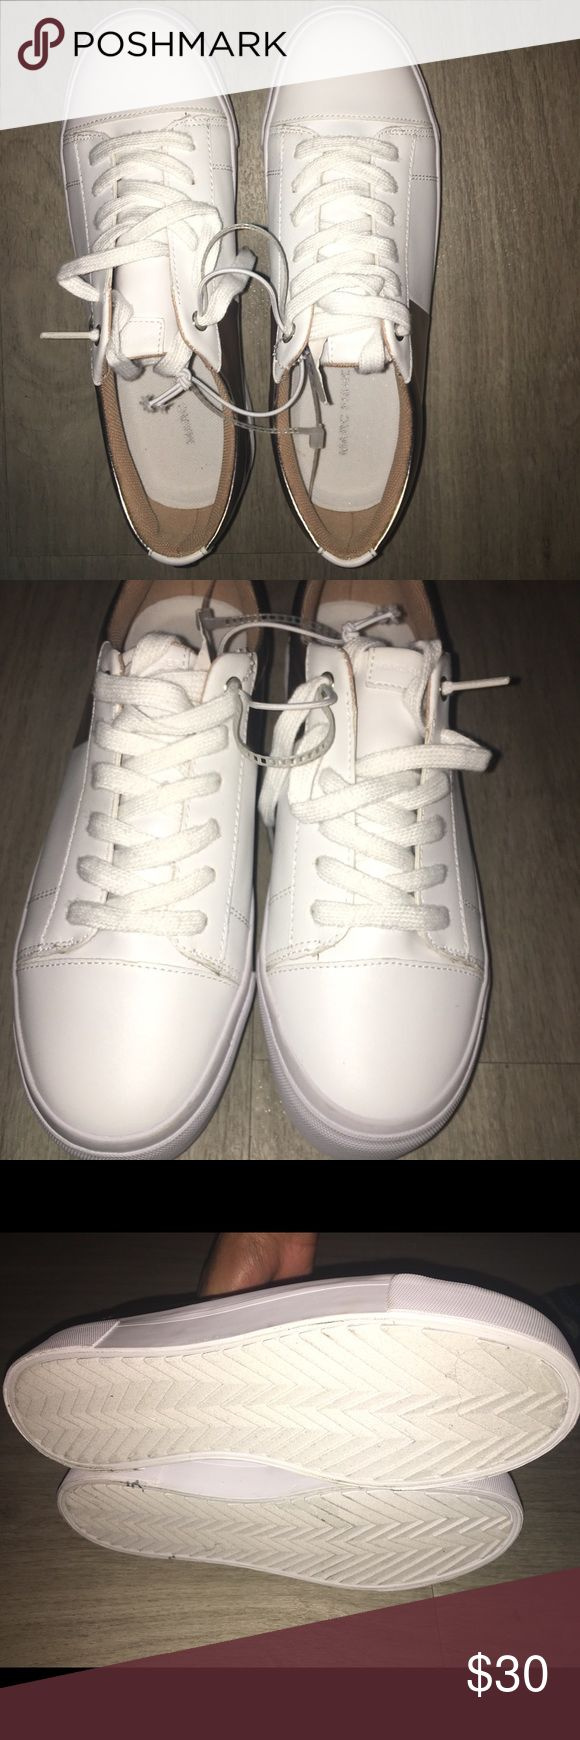 Marc Fisher sneakers Color: white and gold Size:7 Brand new without box Marc Fisher Shoes Sneakers